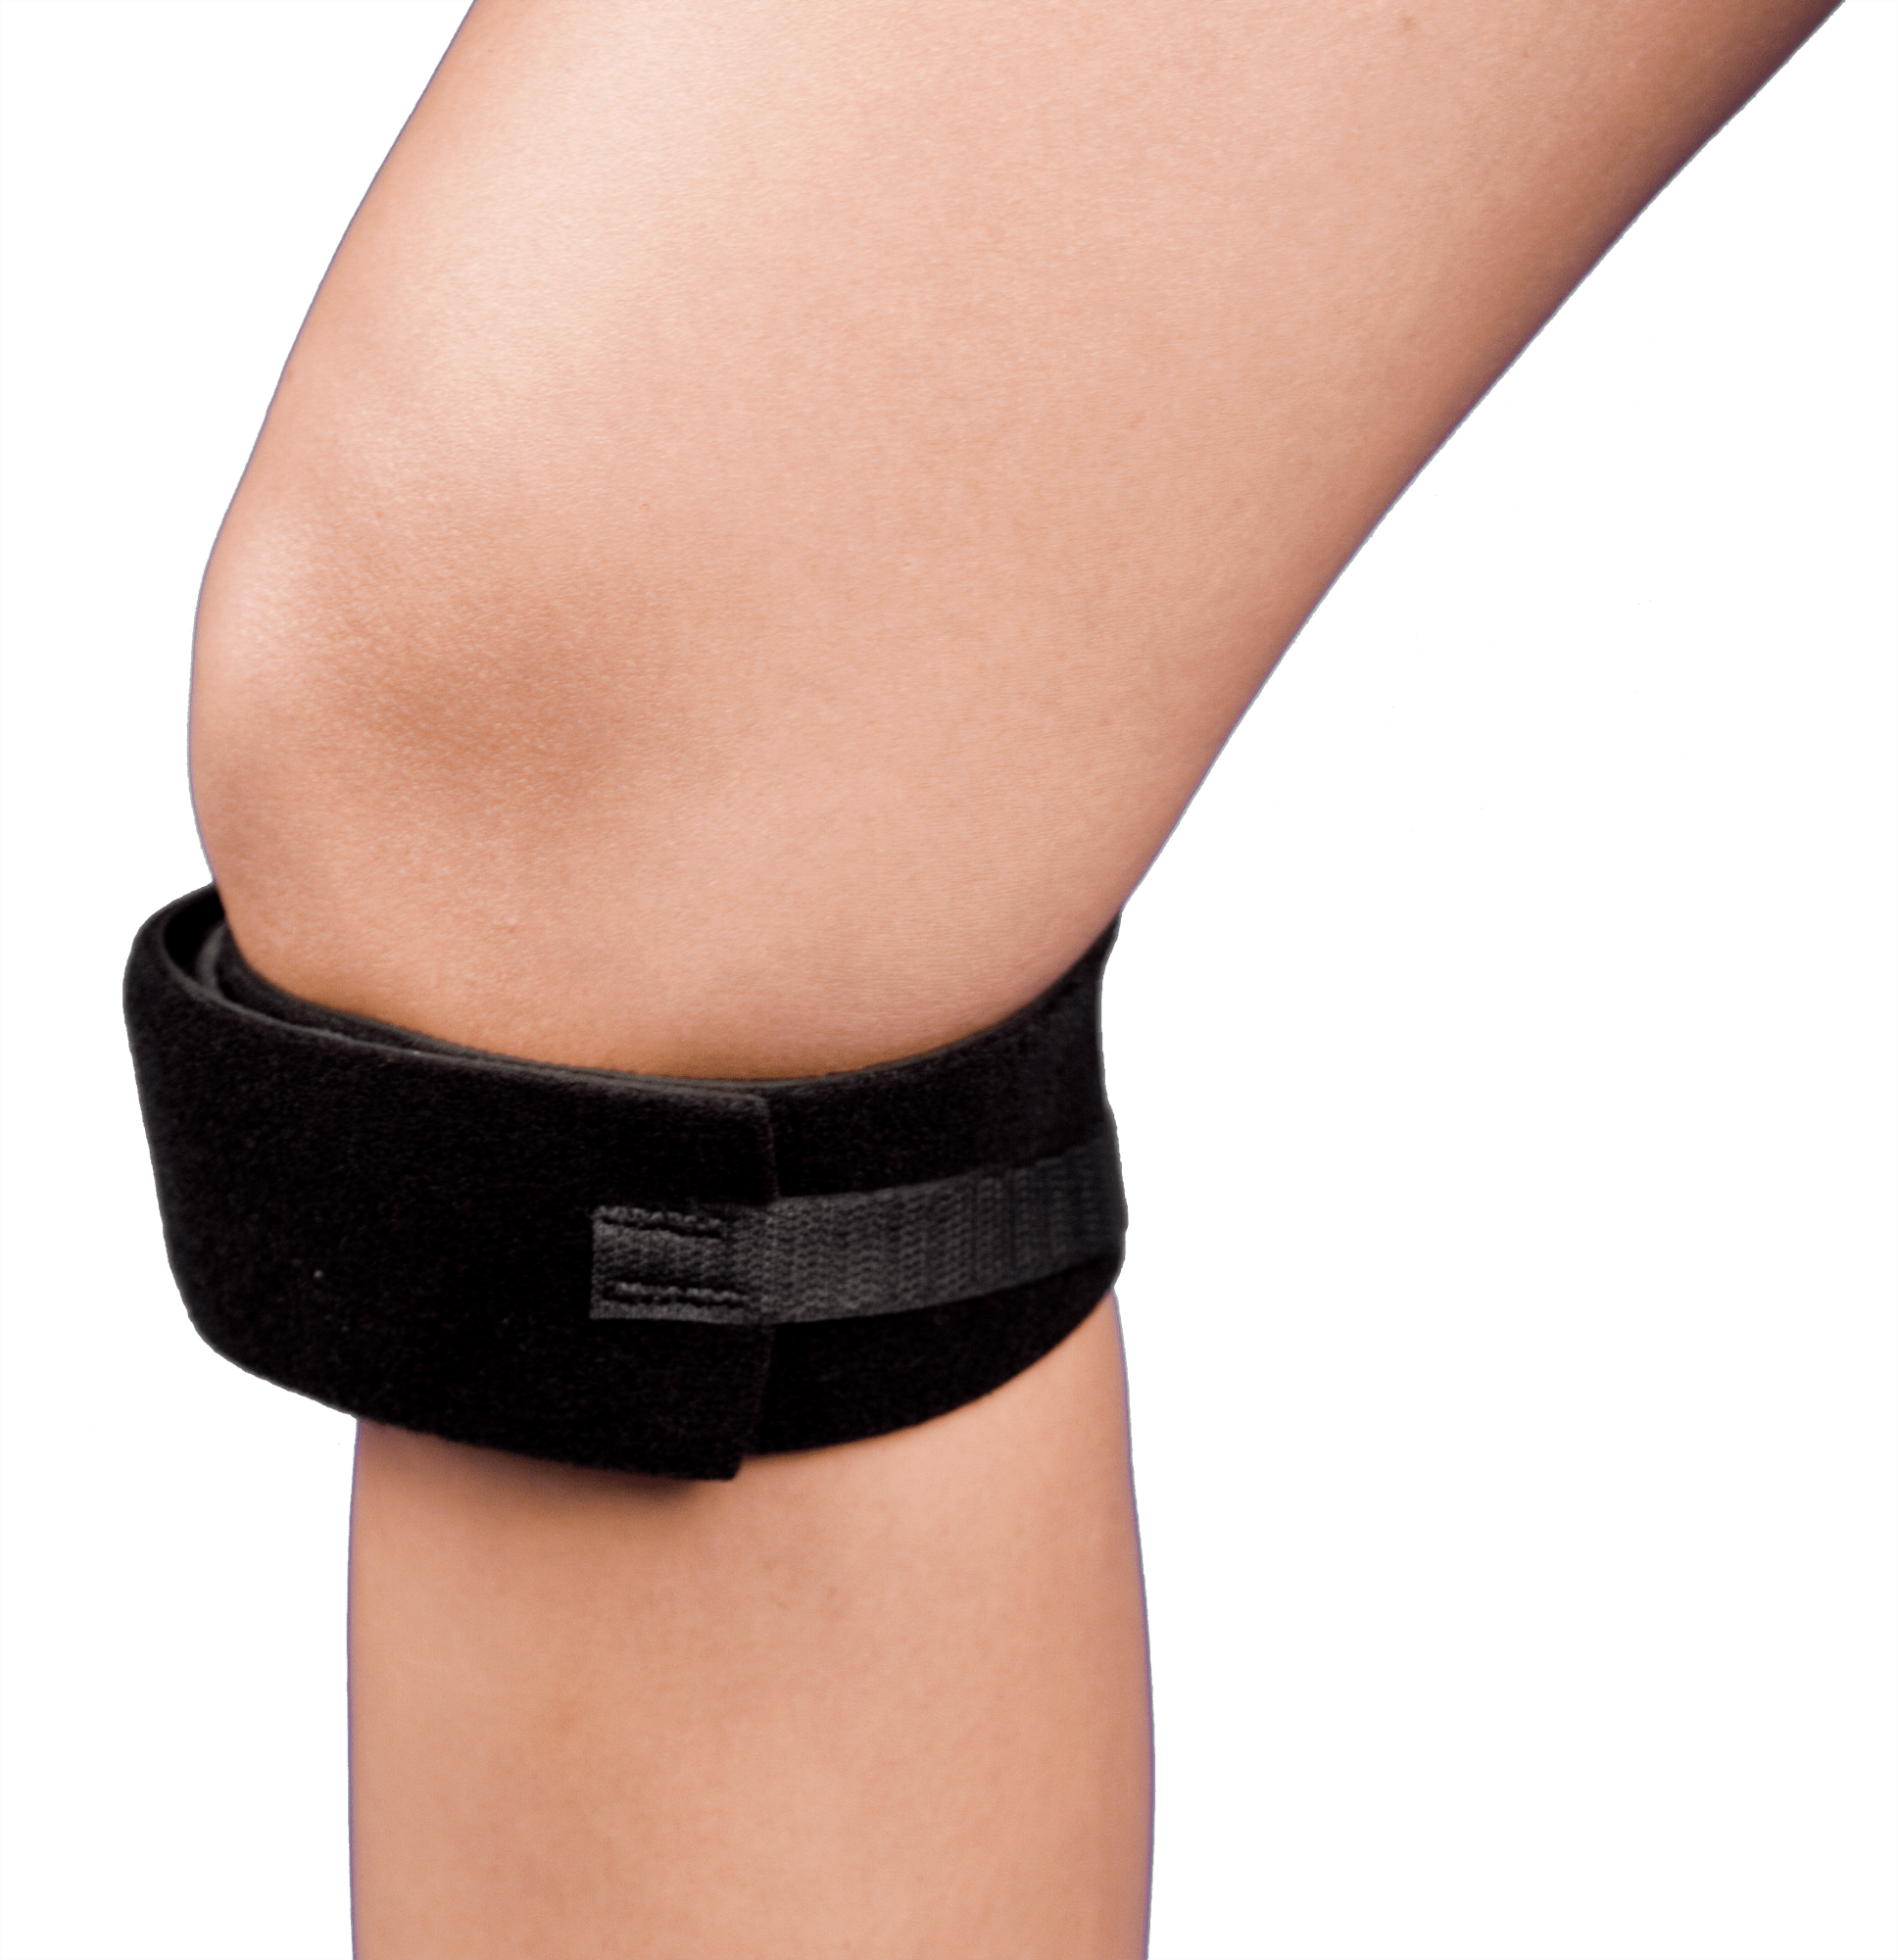 Bunga Braces - Youth Patellar Tracker